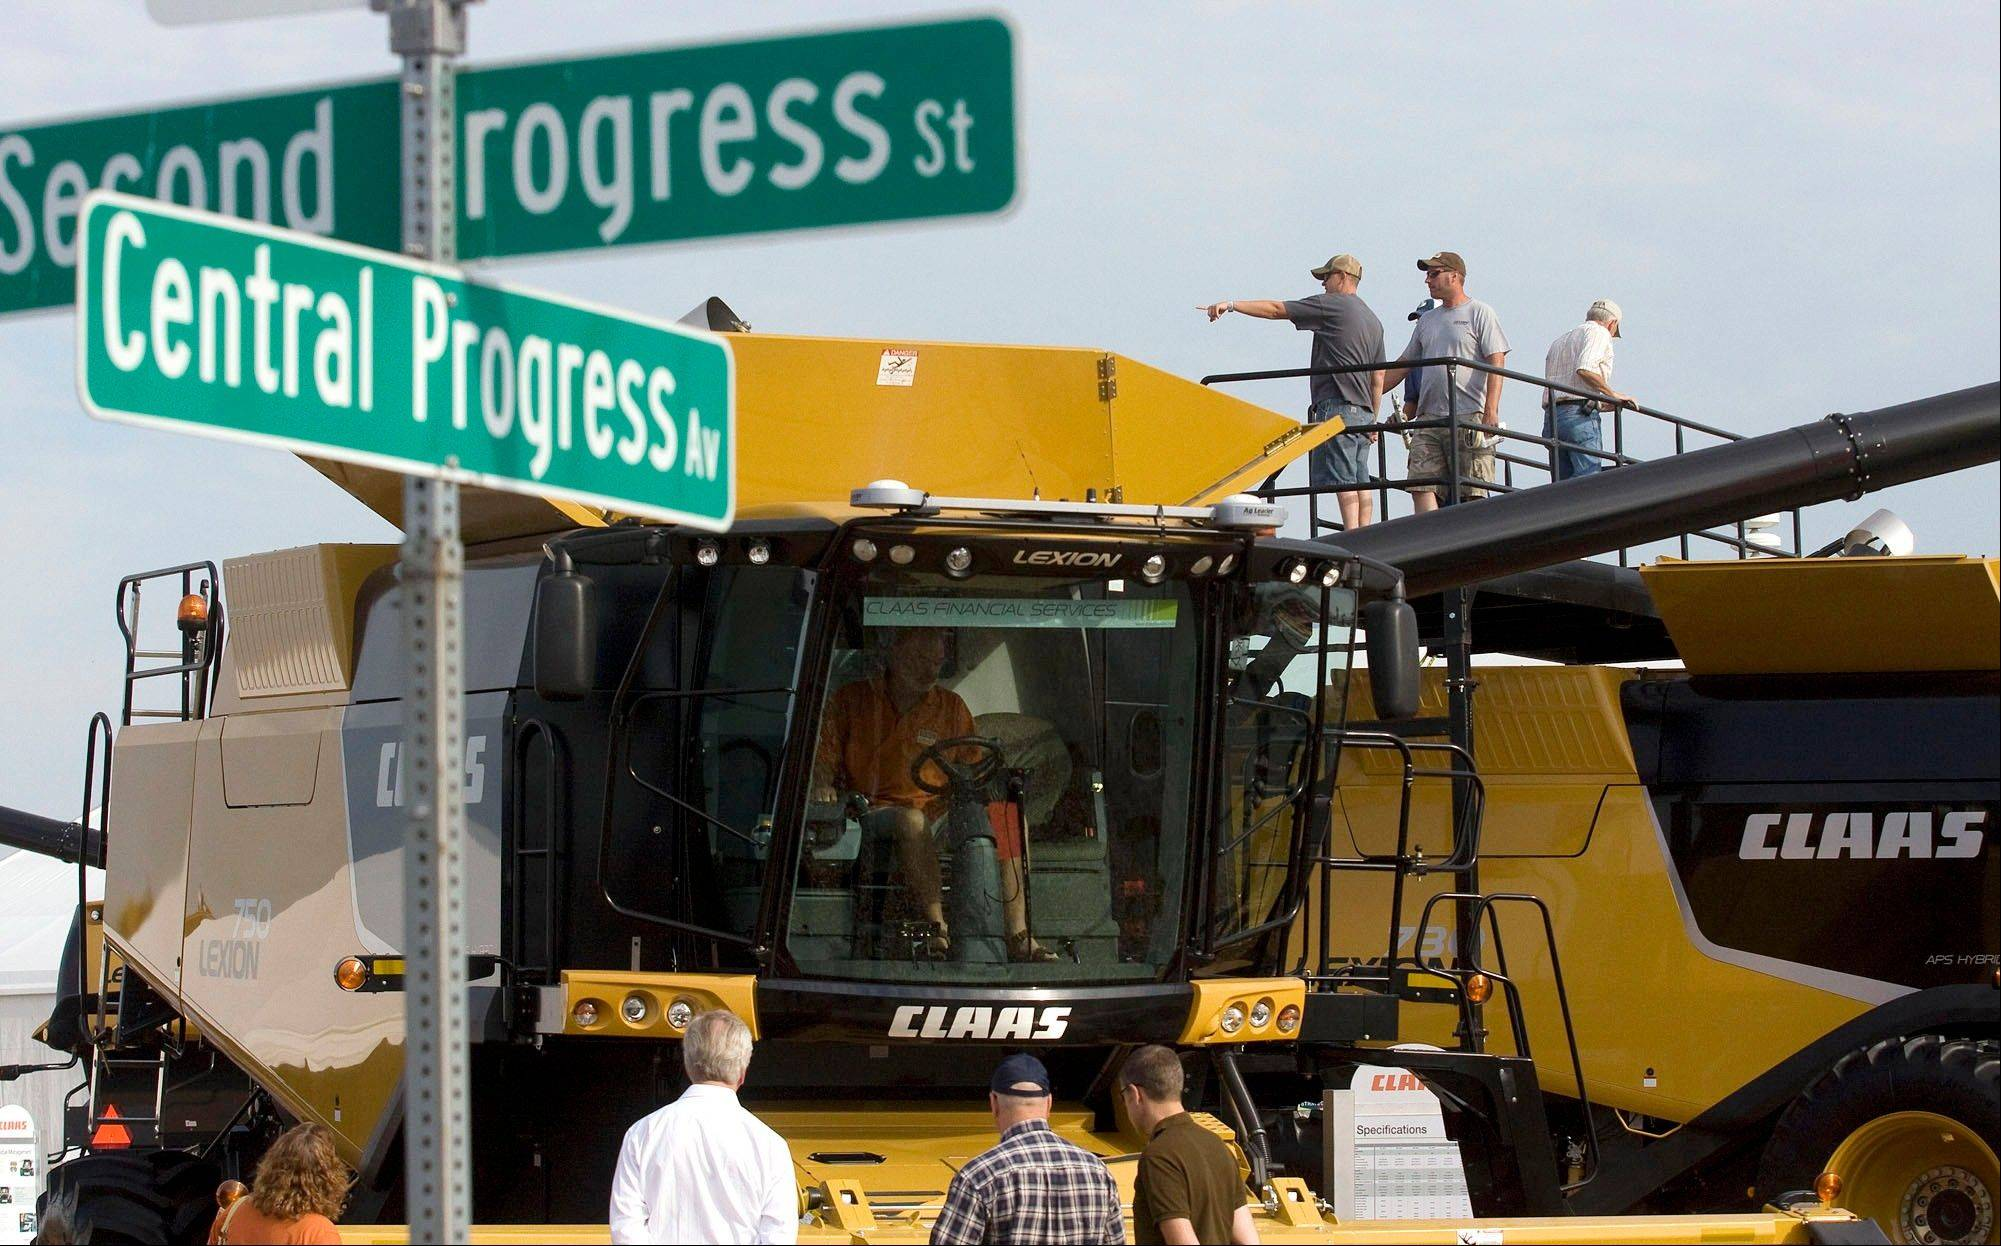 Visitors to the 2011 Farm Progress Show swarm around, in and on top of the Claas Lexon 750 combines.